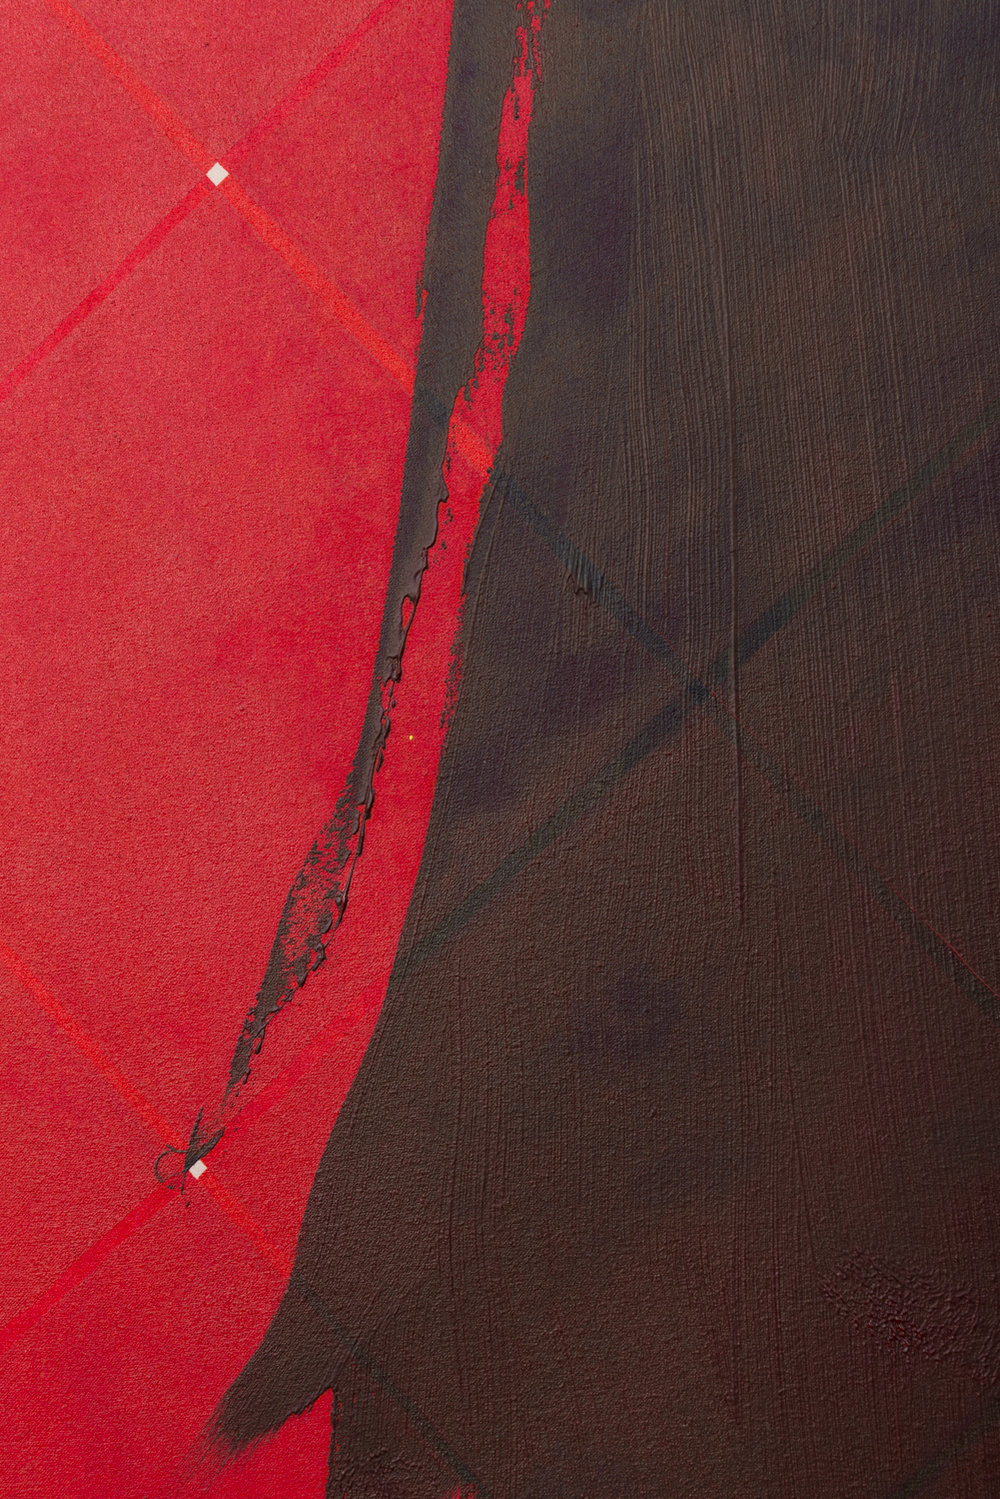 Zak Prekop Sill (detail) 2016 Oil on muslin 96 x 64 in (243.84h x 162.56w cm) ZP358